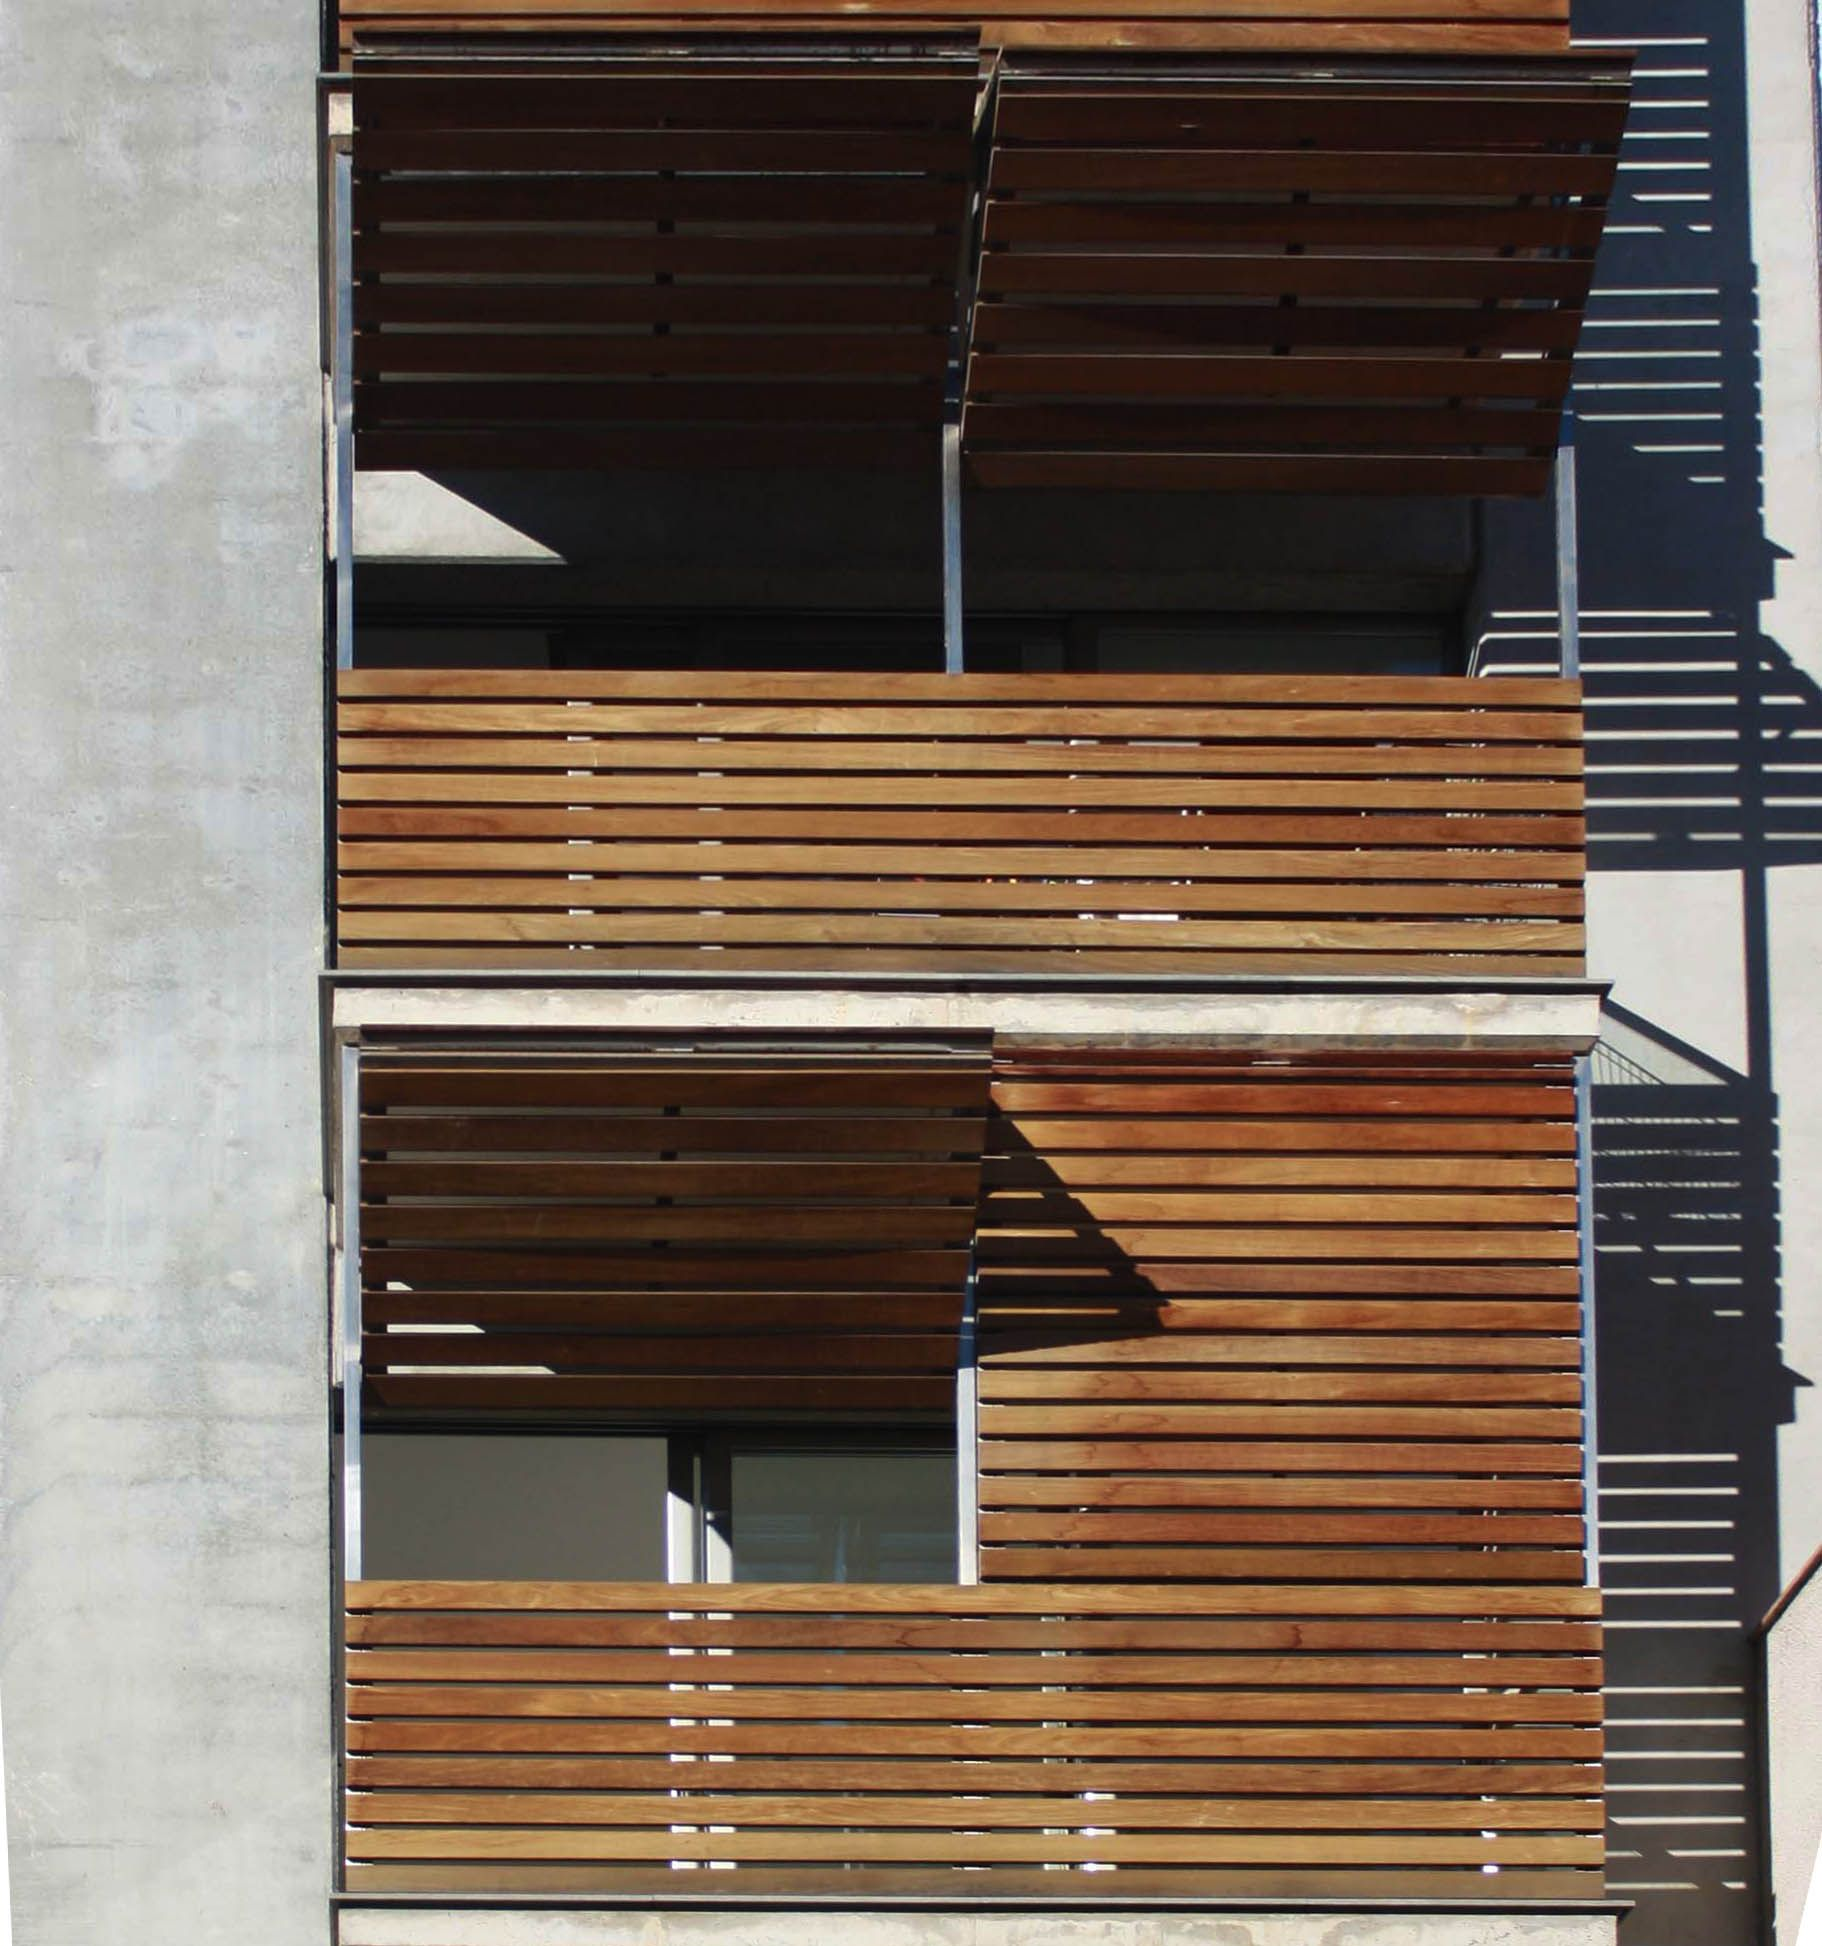 Wooden Louvered Shutter Protecting Balcony 213 Filt3rs Pinterest Louvered Shutters Wood